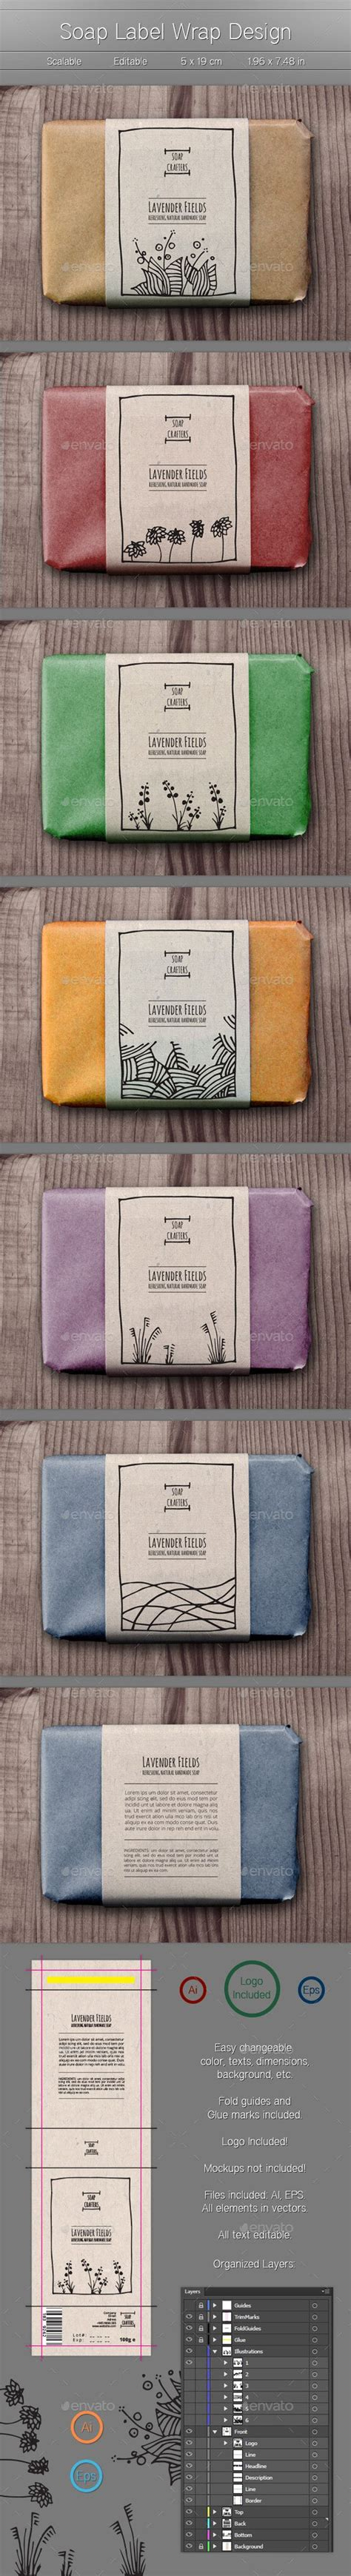 packaging labels template soaps packaging and templates on